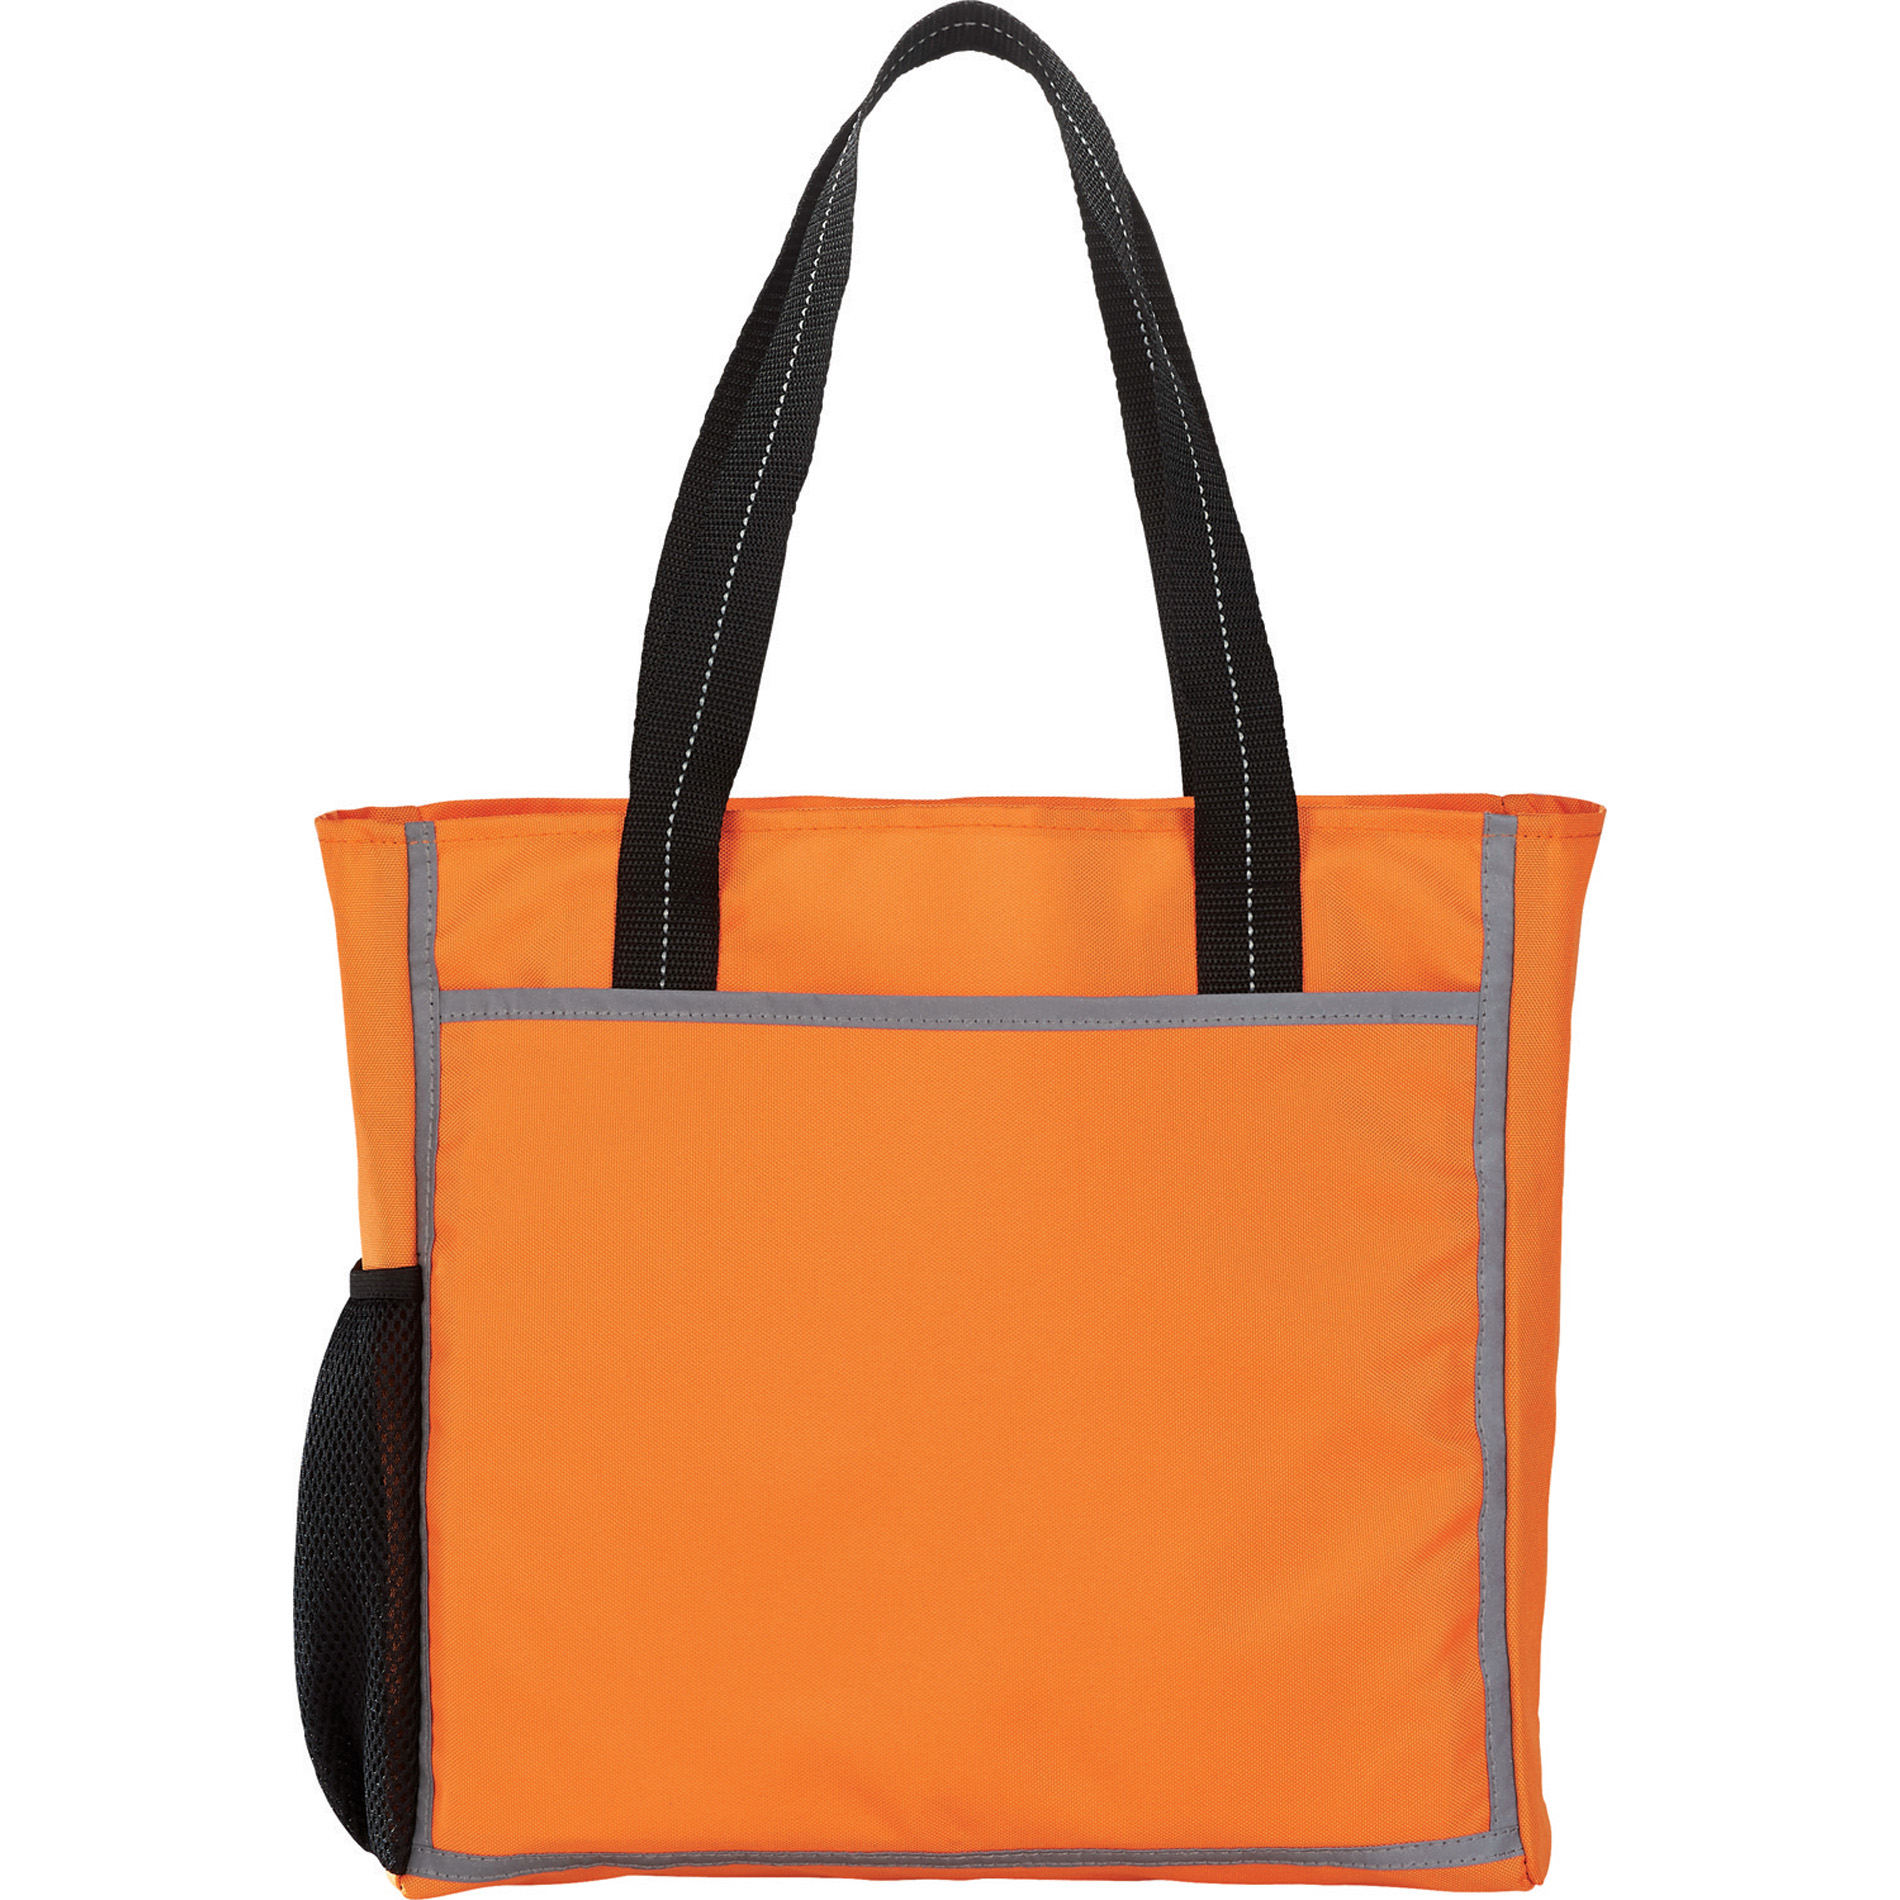 LEEDS 6760-04 - Reflective Frame Tote